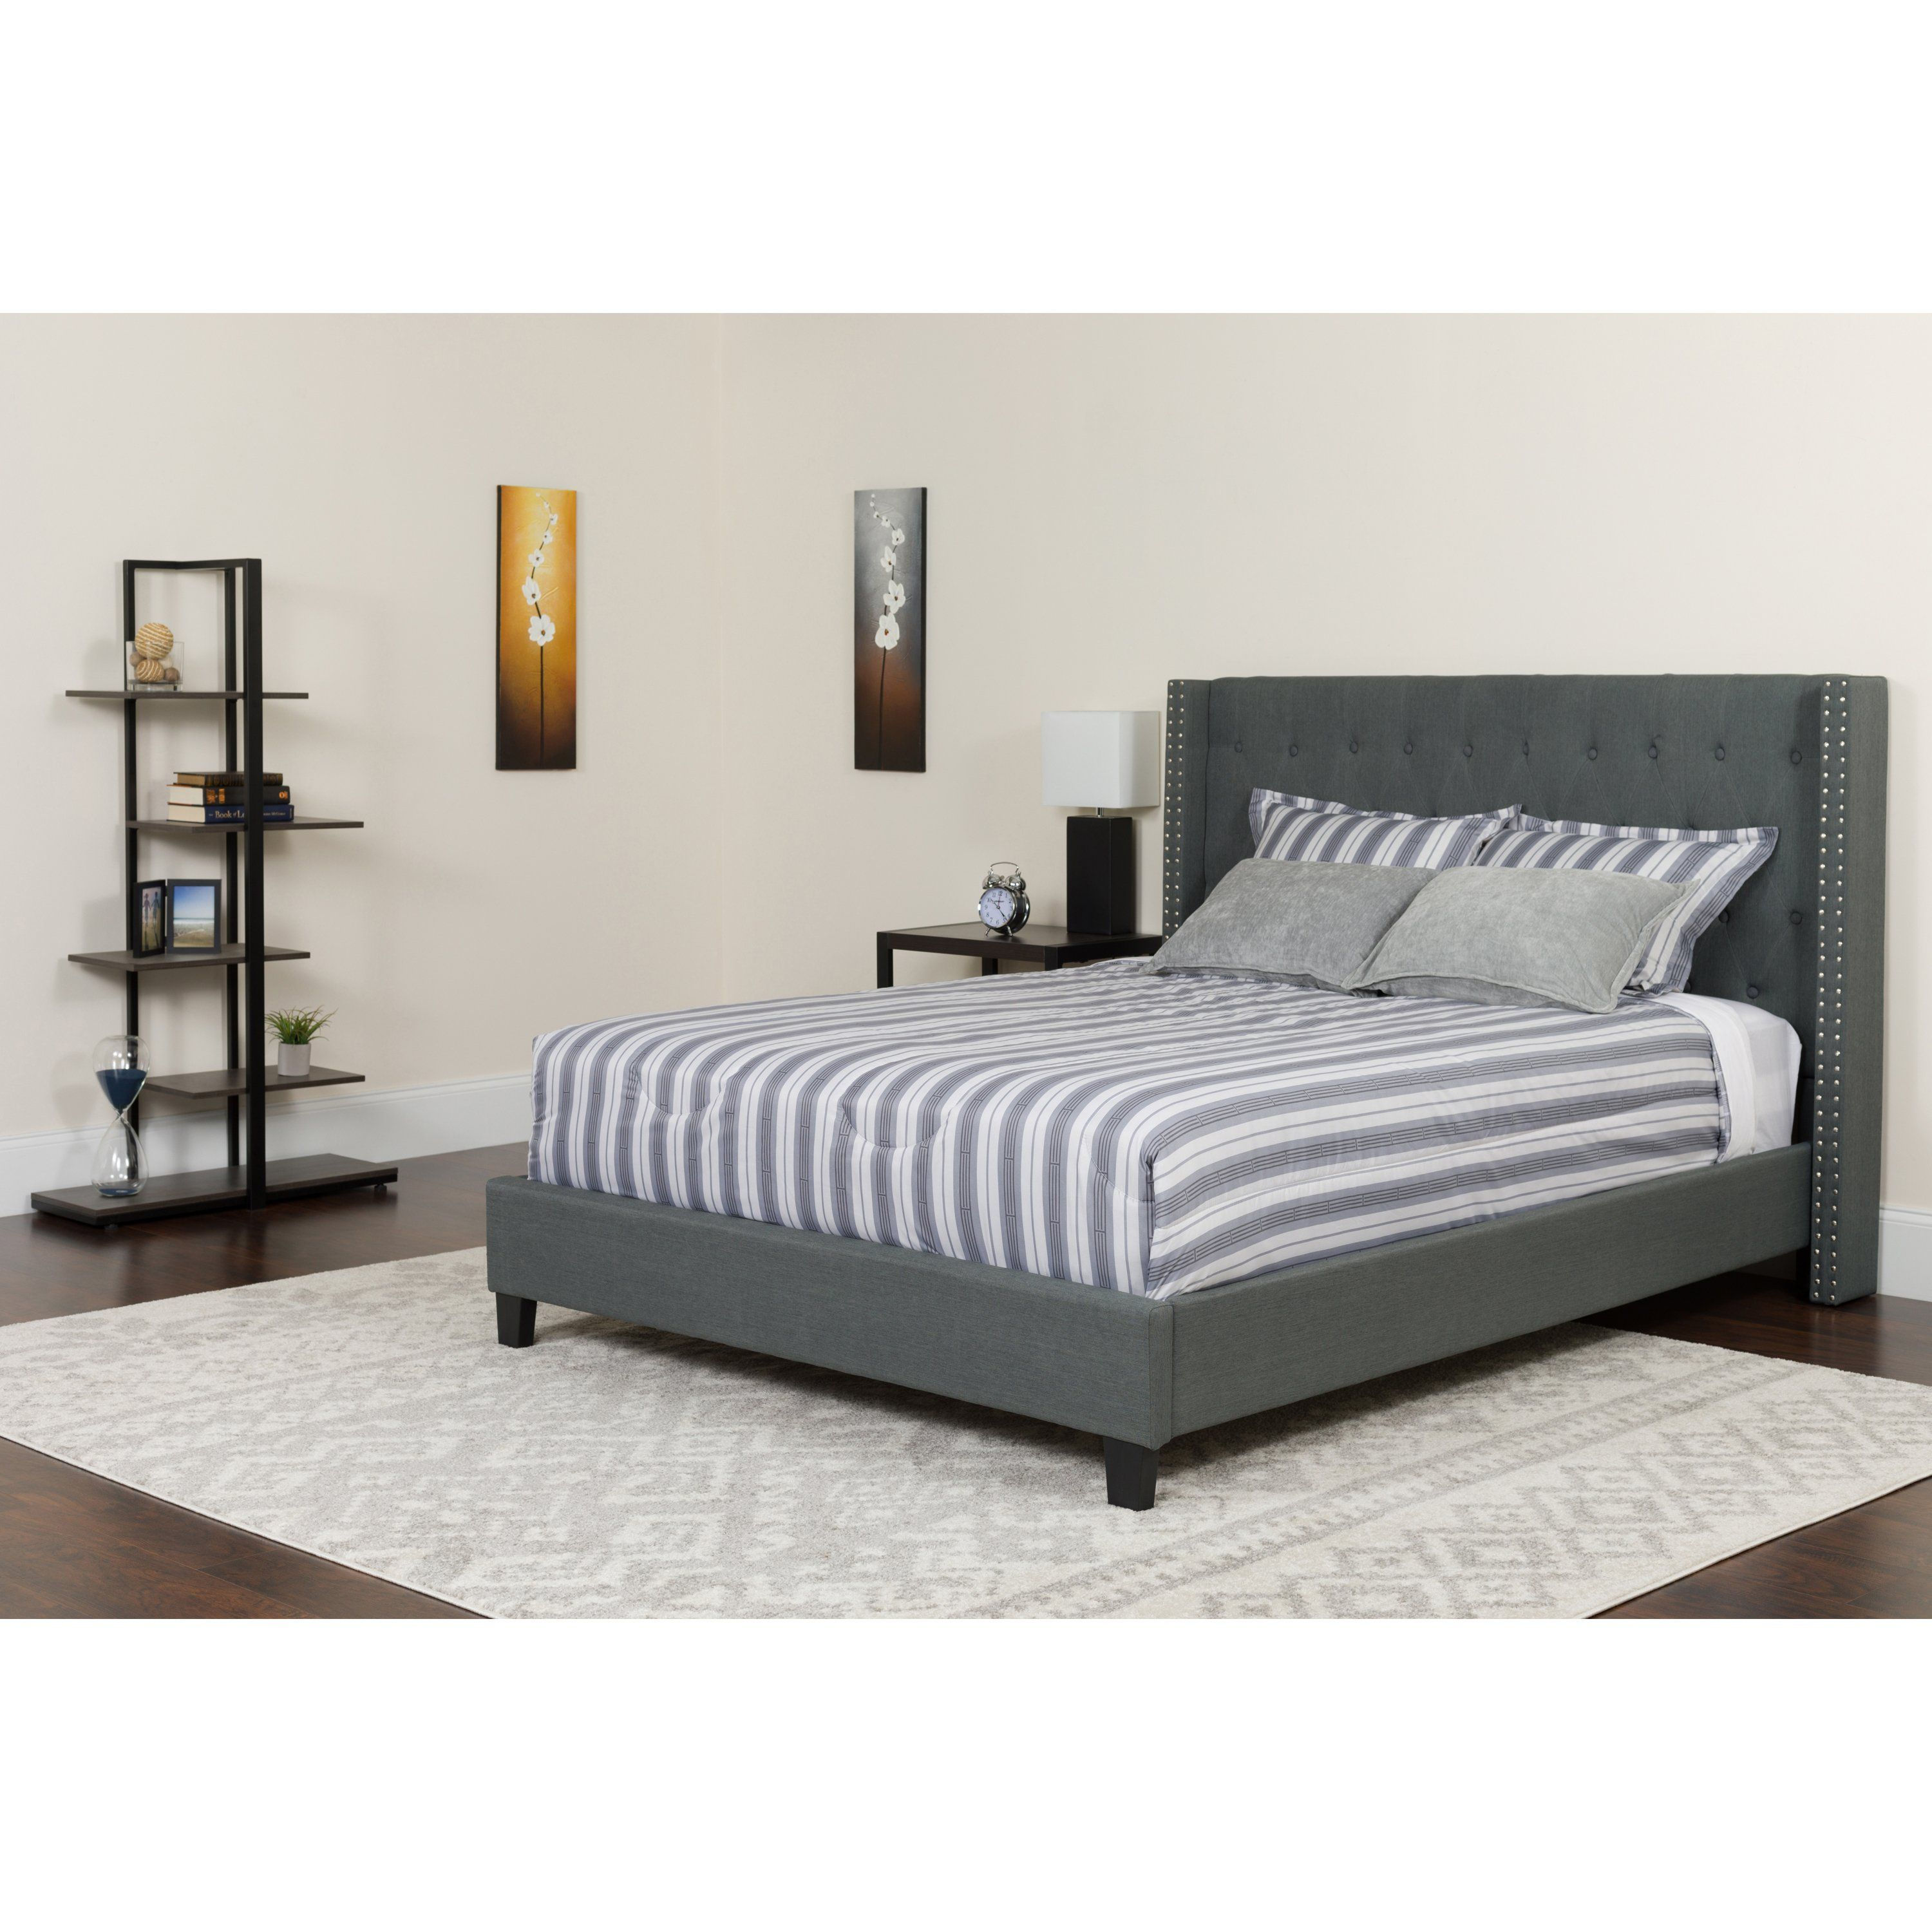 Make your bedroom have a luxury look and sleep like a